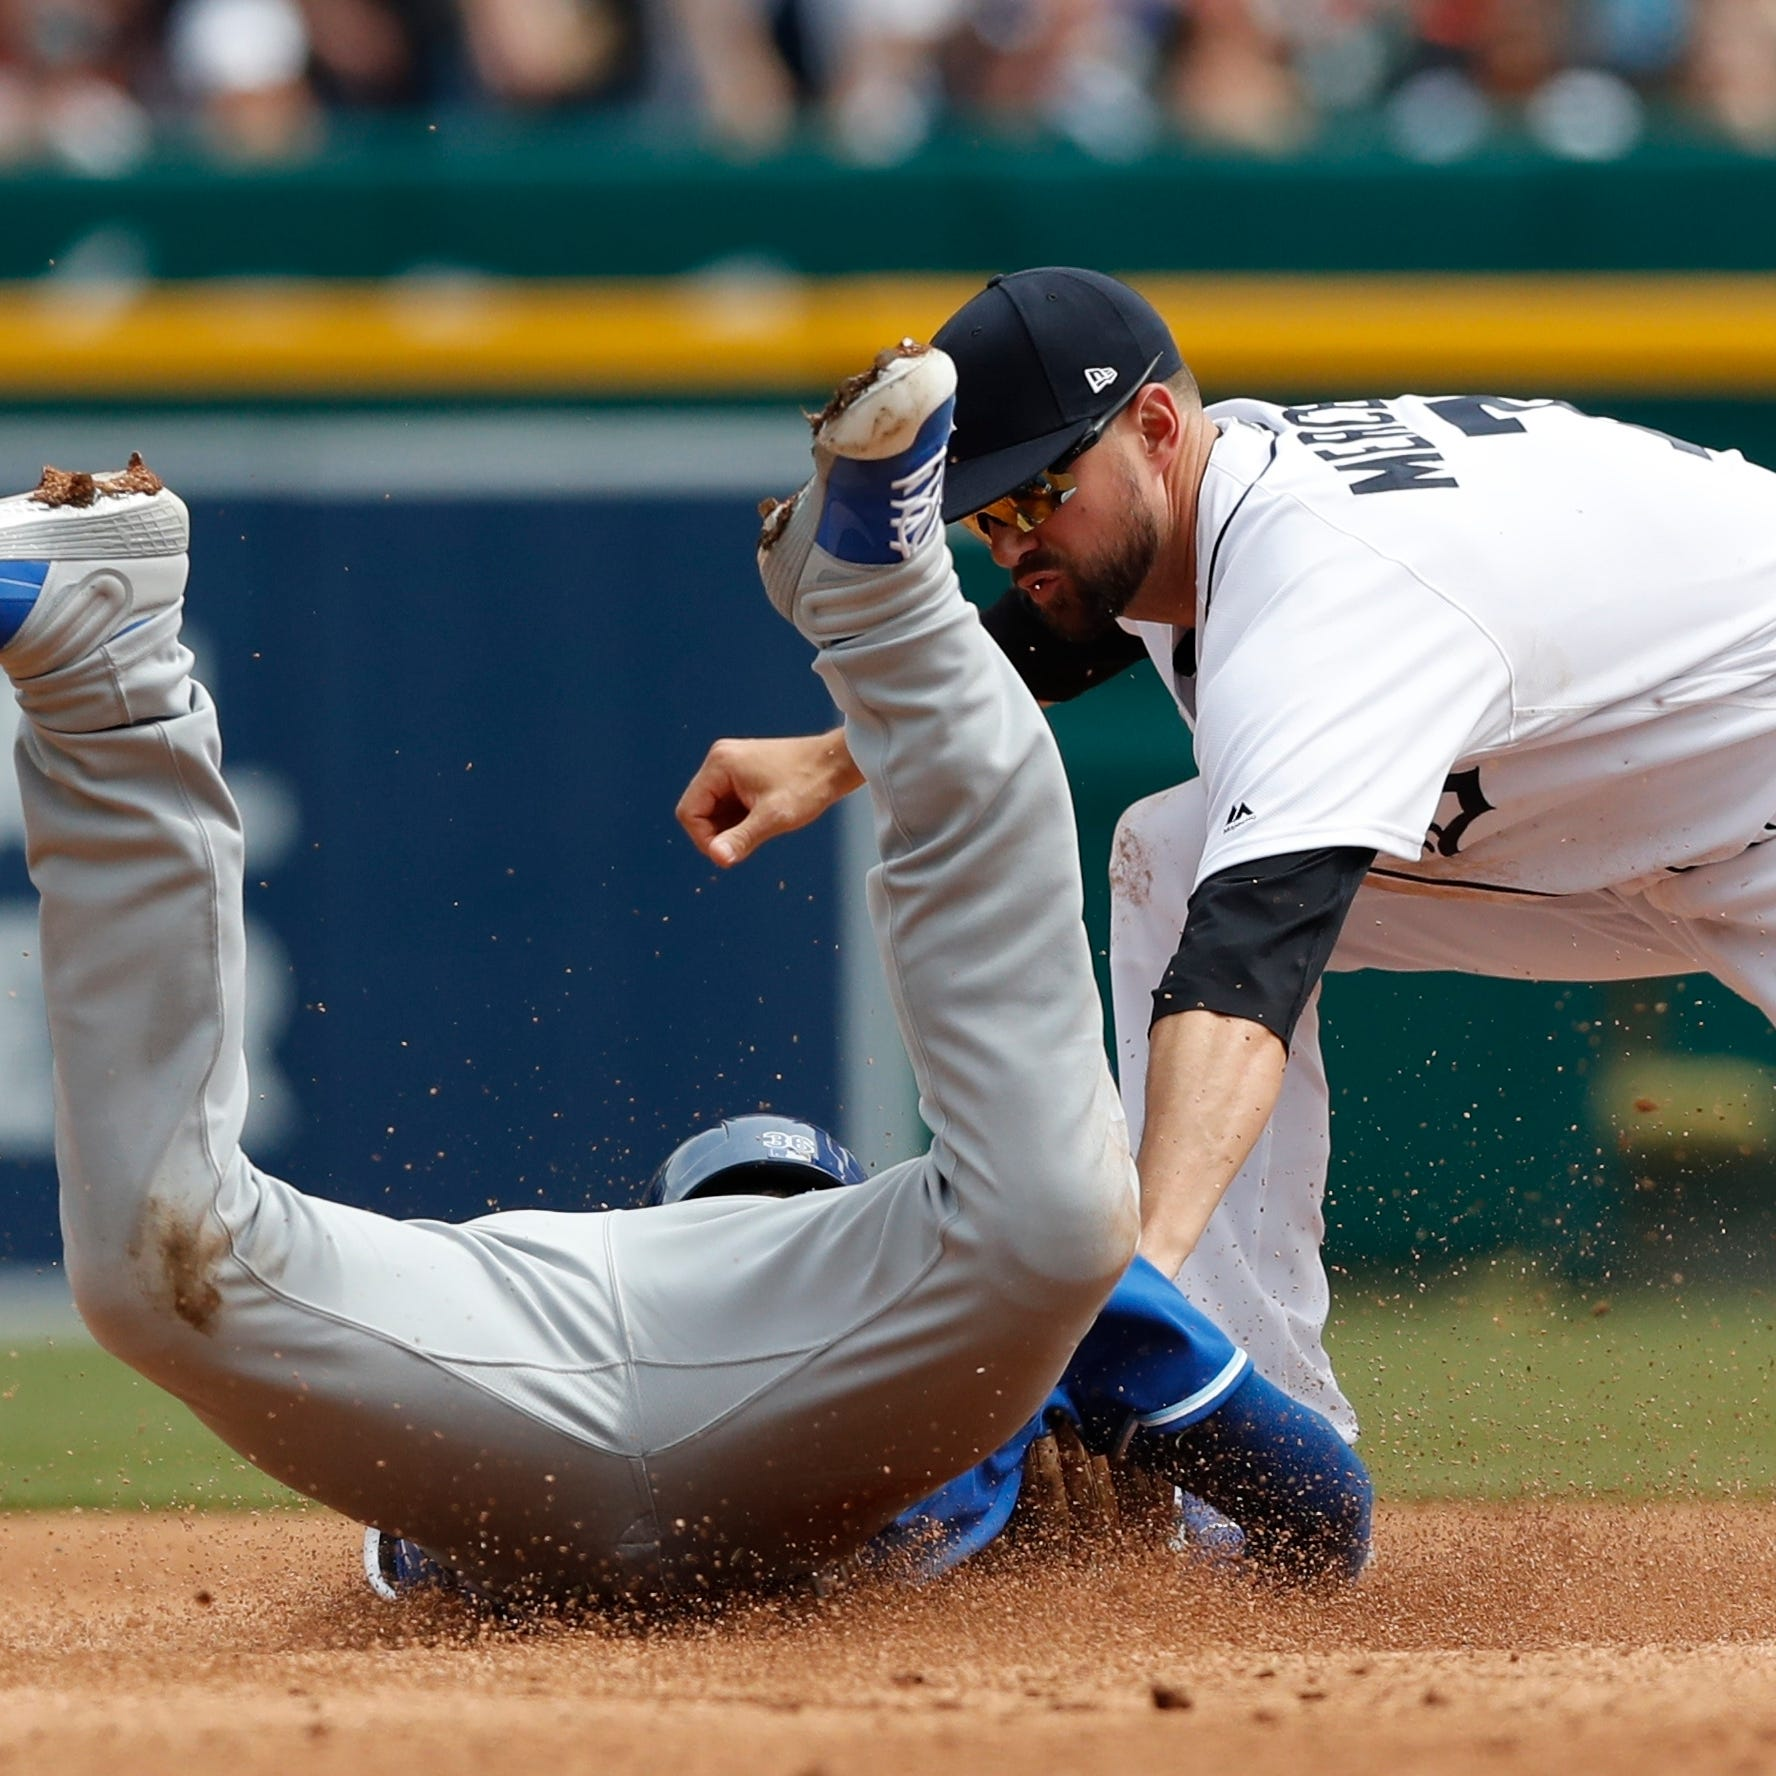 Defense, Tyson Ross star as Tigers sweep Royals to push win streak to 5